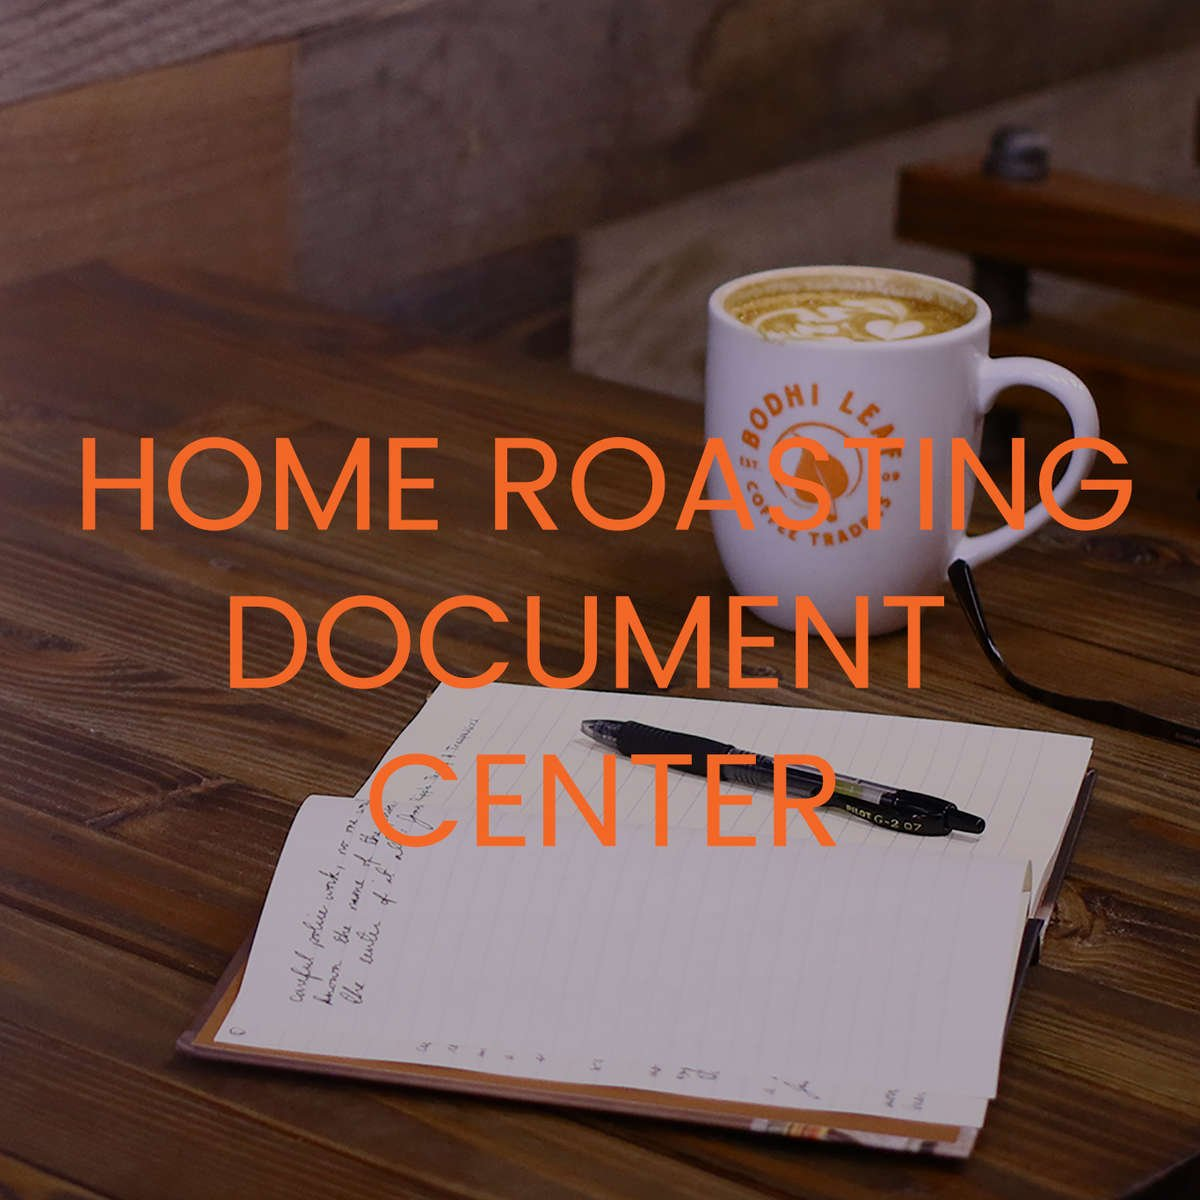 Home Roasting Document Center